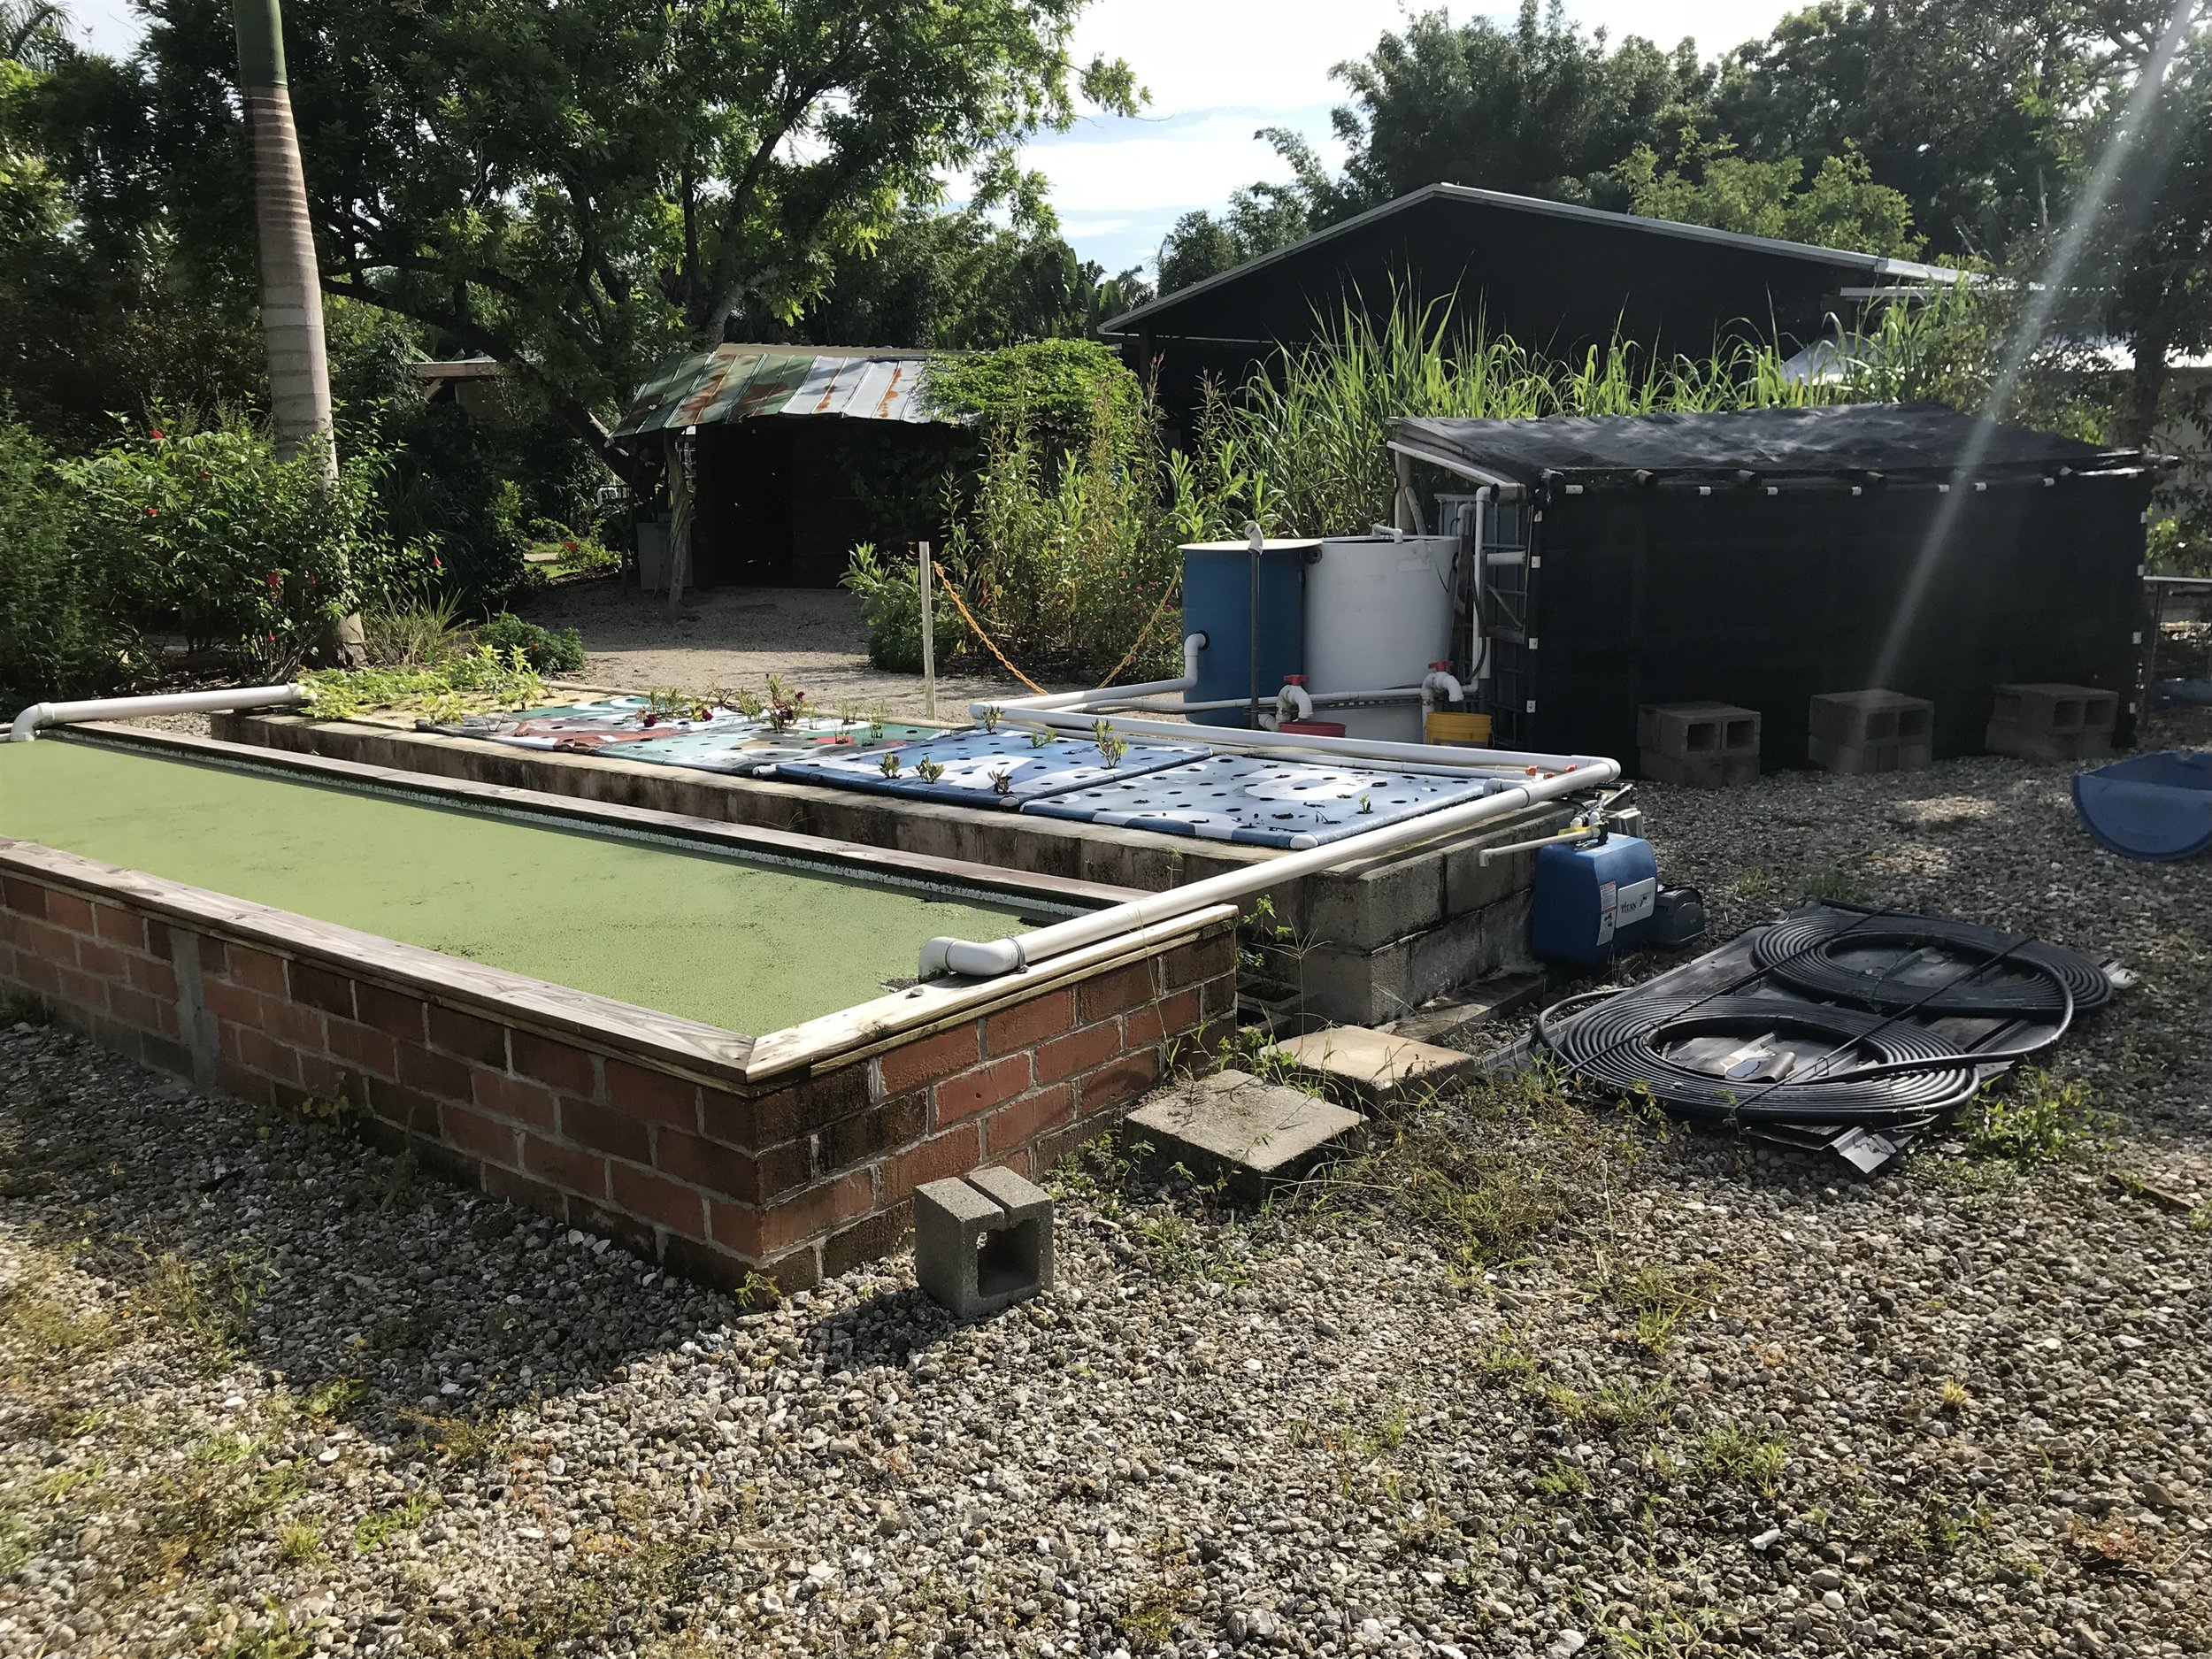 """This is the aquaponics system. In the foreground are rectangular reservoirs which receive nutrient rich water from the fish tanks in the background. (three fish tanks are covered by the black shade cloth) In these reservoirs float foam """"islands"""" which hold vegetables and leaf crops. These plants use the nutrients and then this water is cycled back to the fish tanks to start the cycle over again. The fish tanks were full of nice fat tilapia. I'm getting hungry!"""